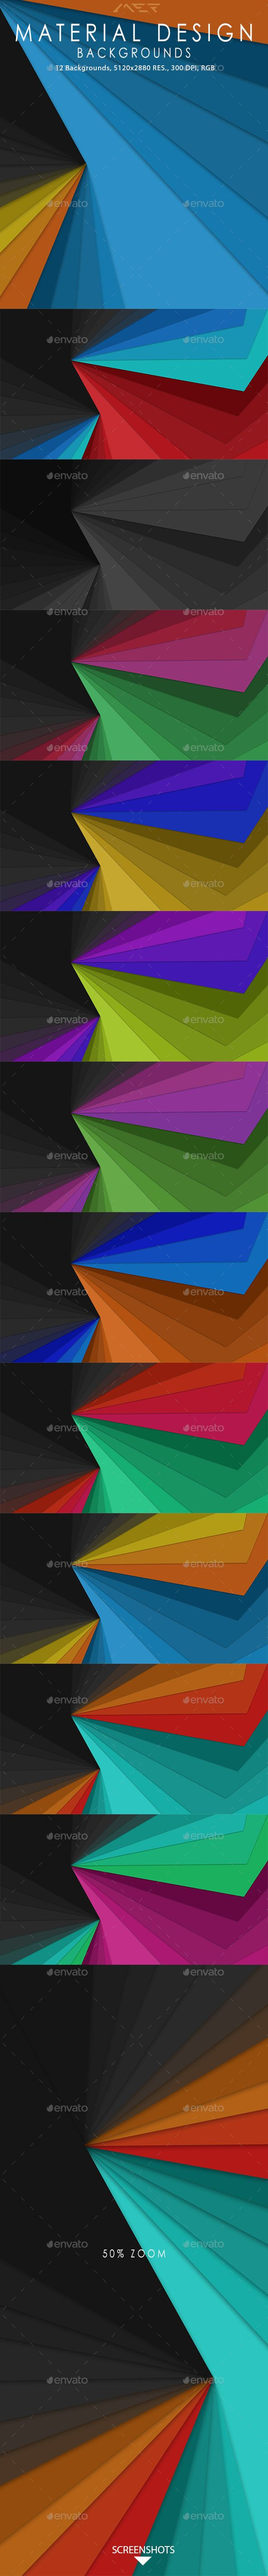 Material Design Backgrounds by M-e-f Material Design Backgrounds  high quality, nice modern design, retina screen resolution, good for using at the web, apps, presenta